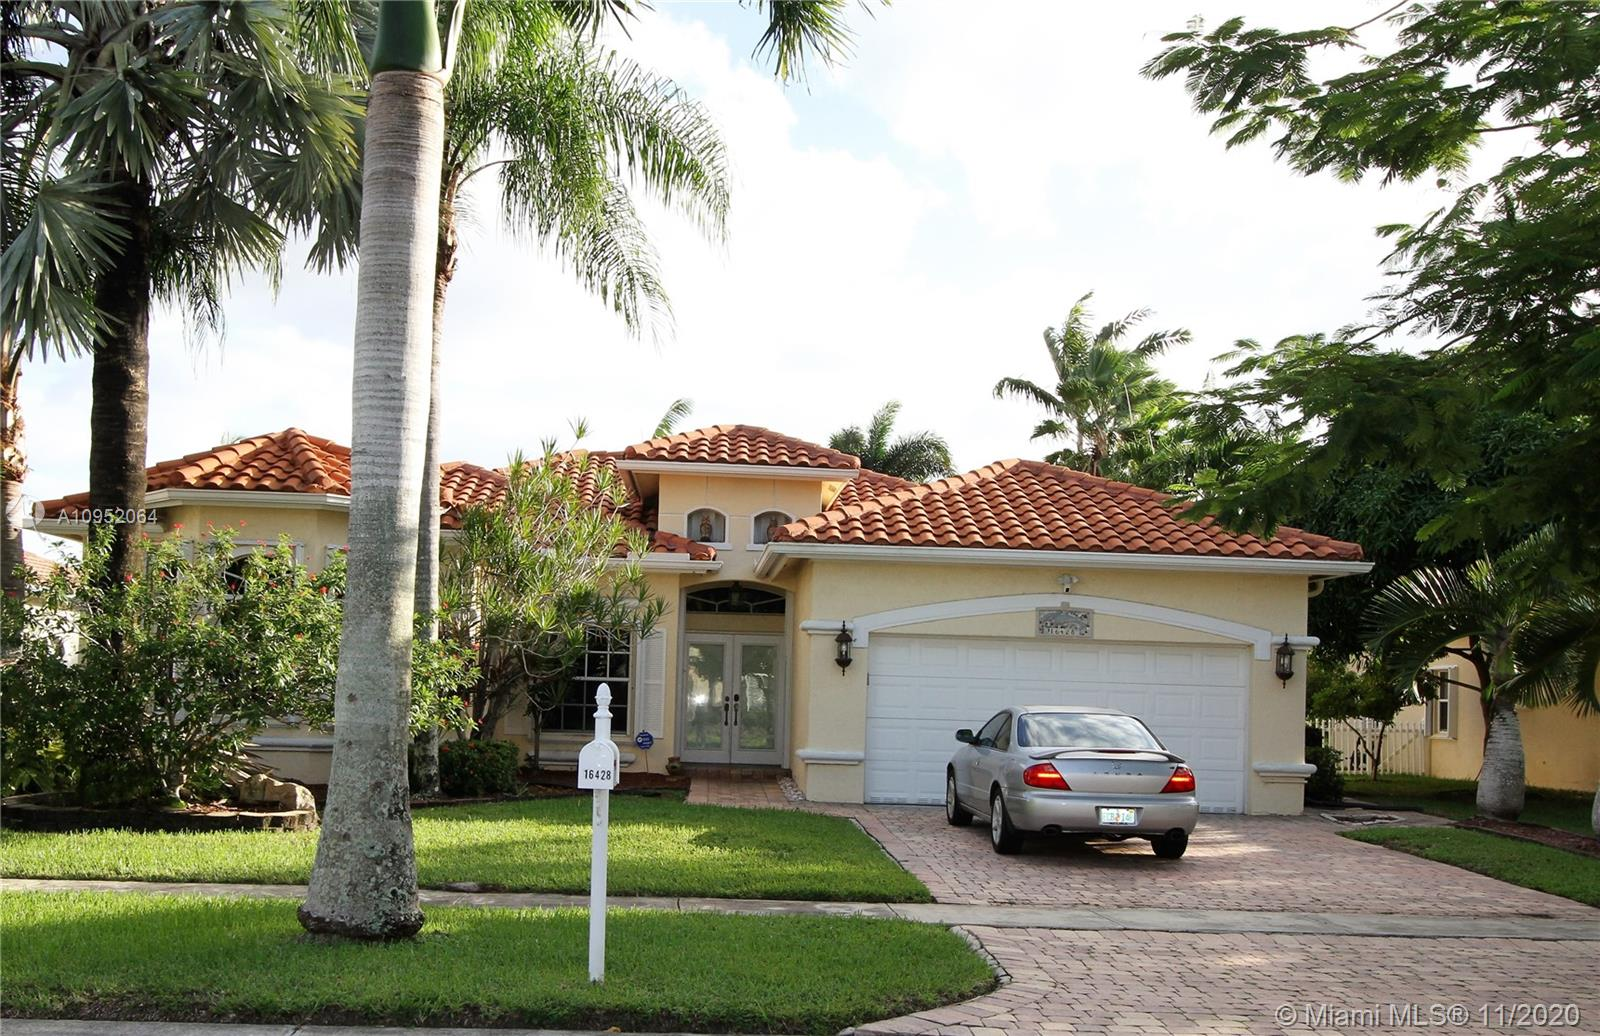 BEAUTIFUL POOL AND LAKE HOME PRICED TO SELL FAST! A/C ONLY 5 YEARS OLD ACCORDIAN SHUTTERS AND NEW WINDOW TREATMENTS. PEBBLE TEC POOL OVERLOOKING THE WATER. TOP OF THE LINE SECURITY SYSTEM.